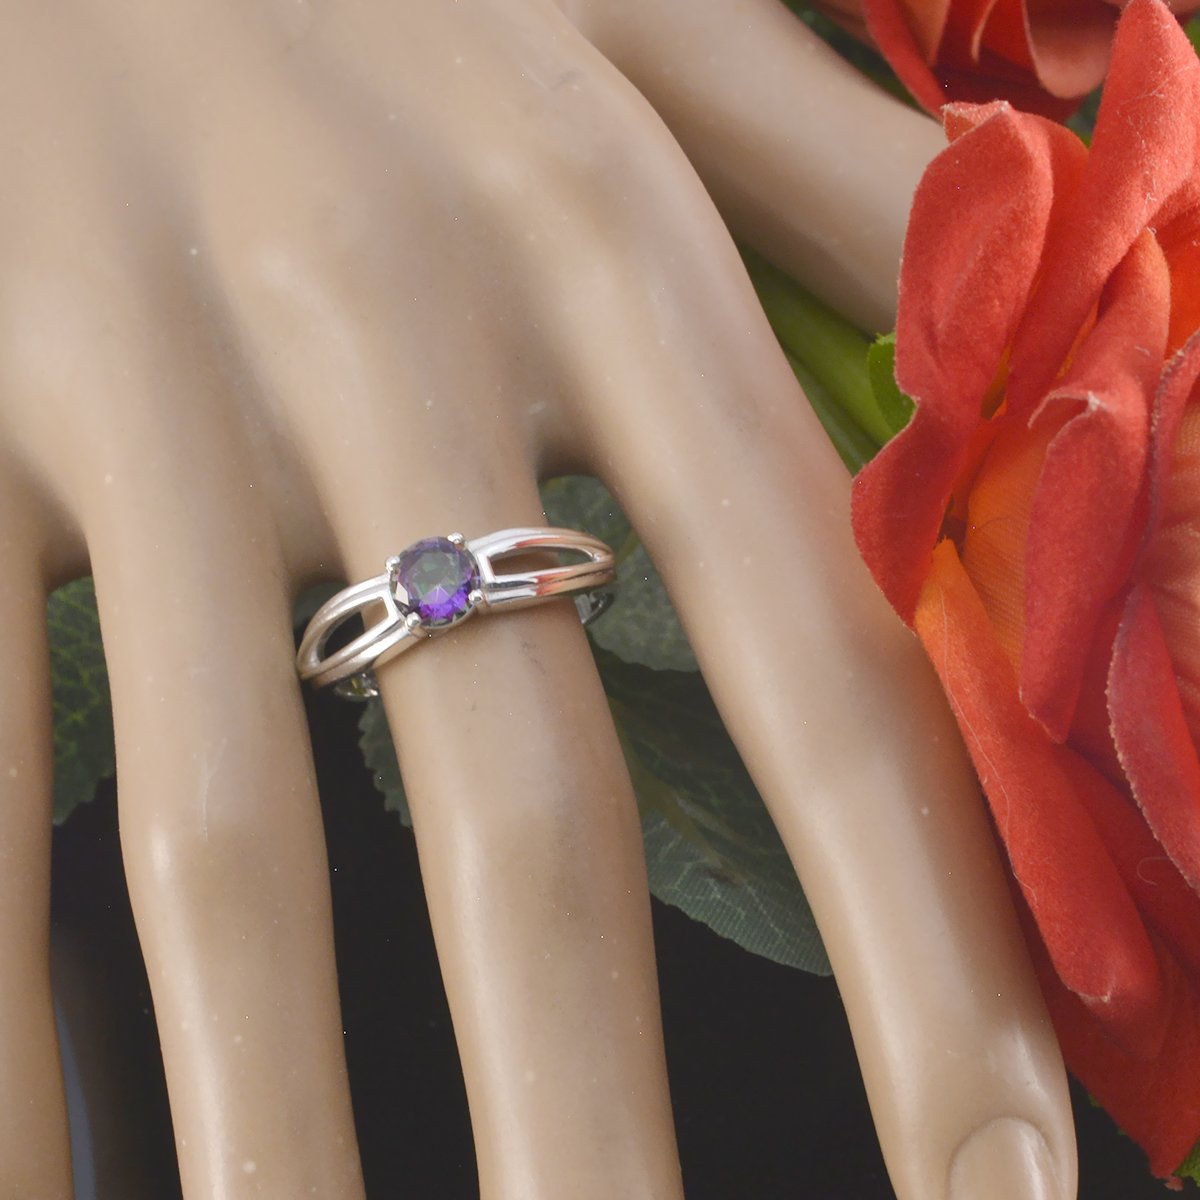 Lovely Gemstones Round Faceted Mystic Quartz Ring Supply Jewelry Greatest Selling Shops Gift for College Jewelry Solid Silver Blue Mystic Quartz Lovely Gemstones Ring